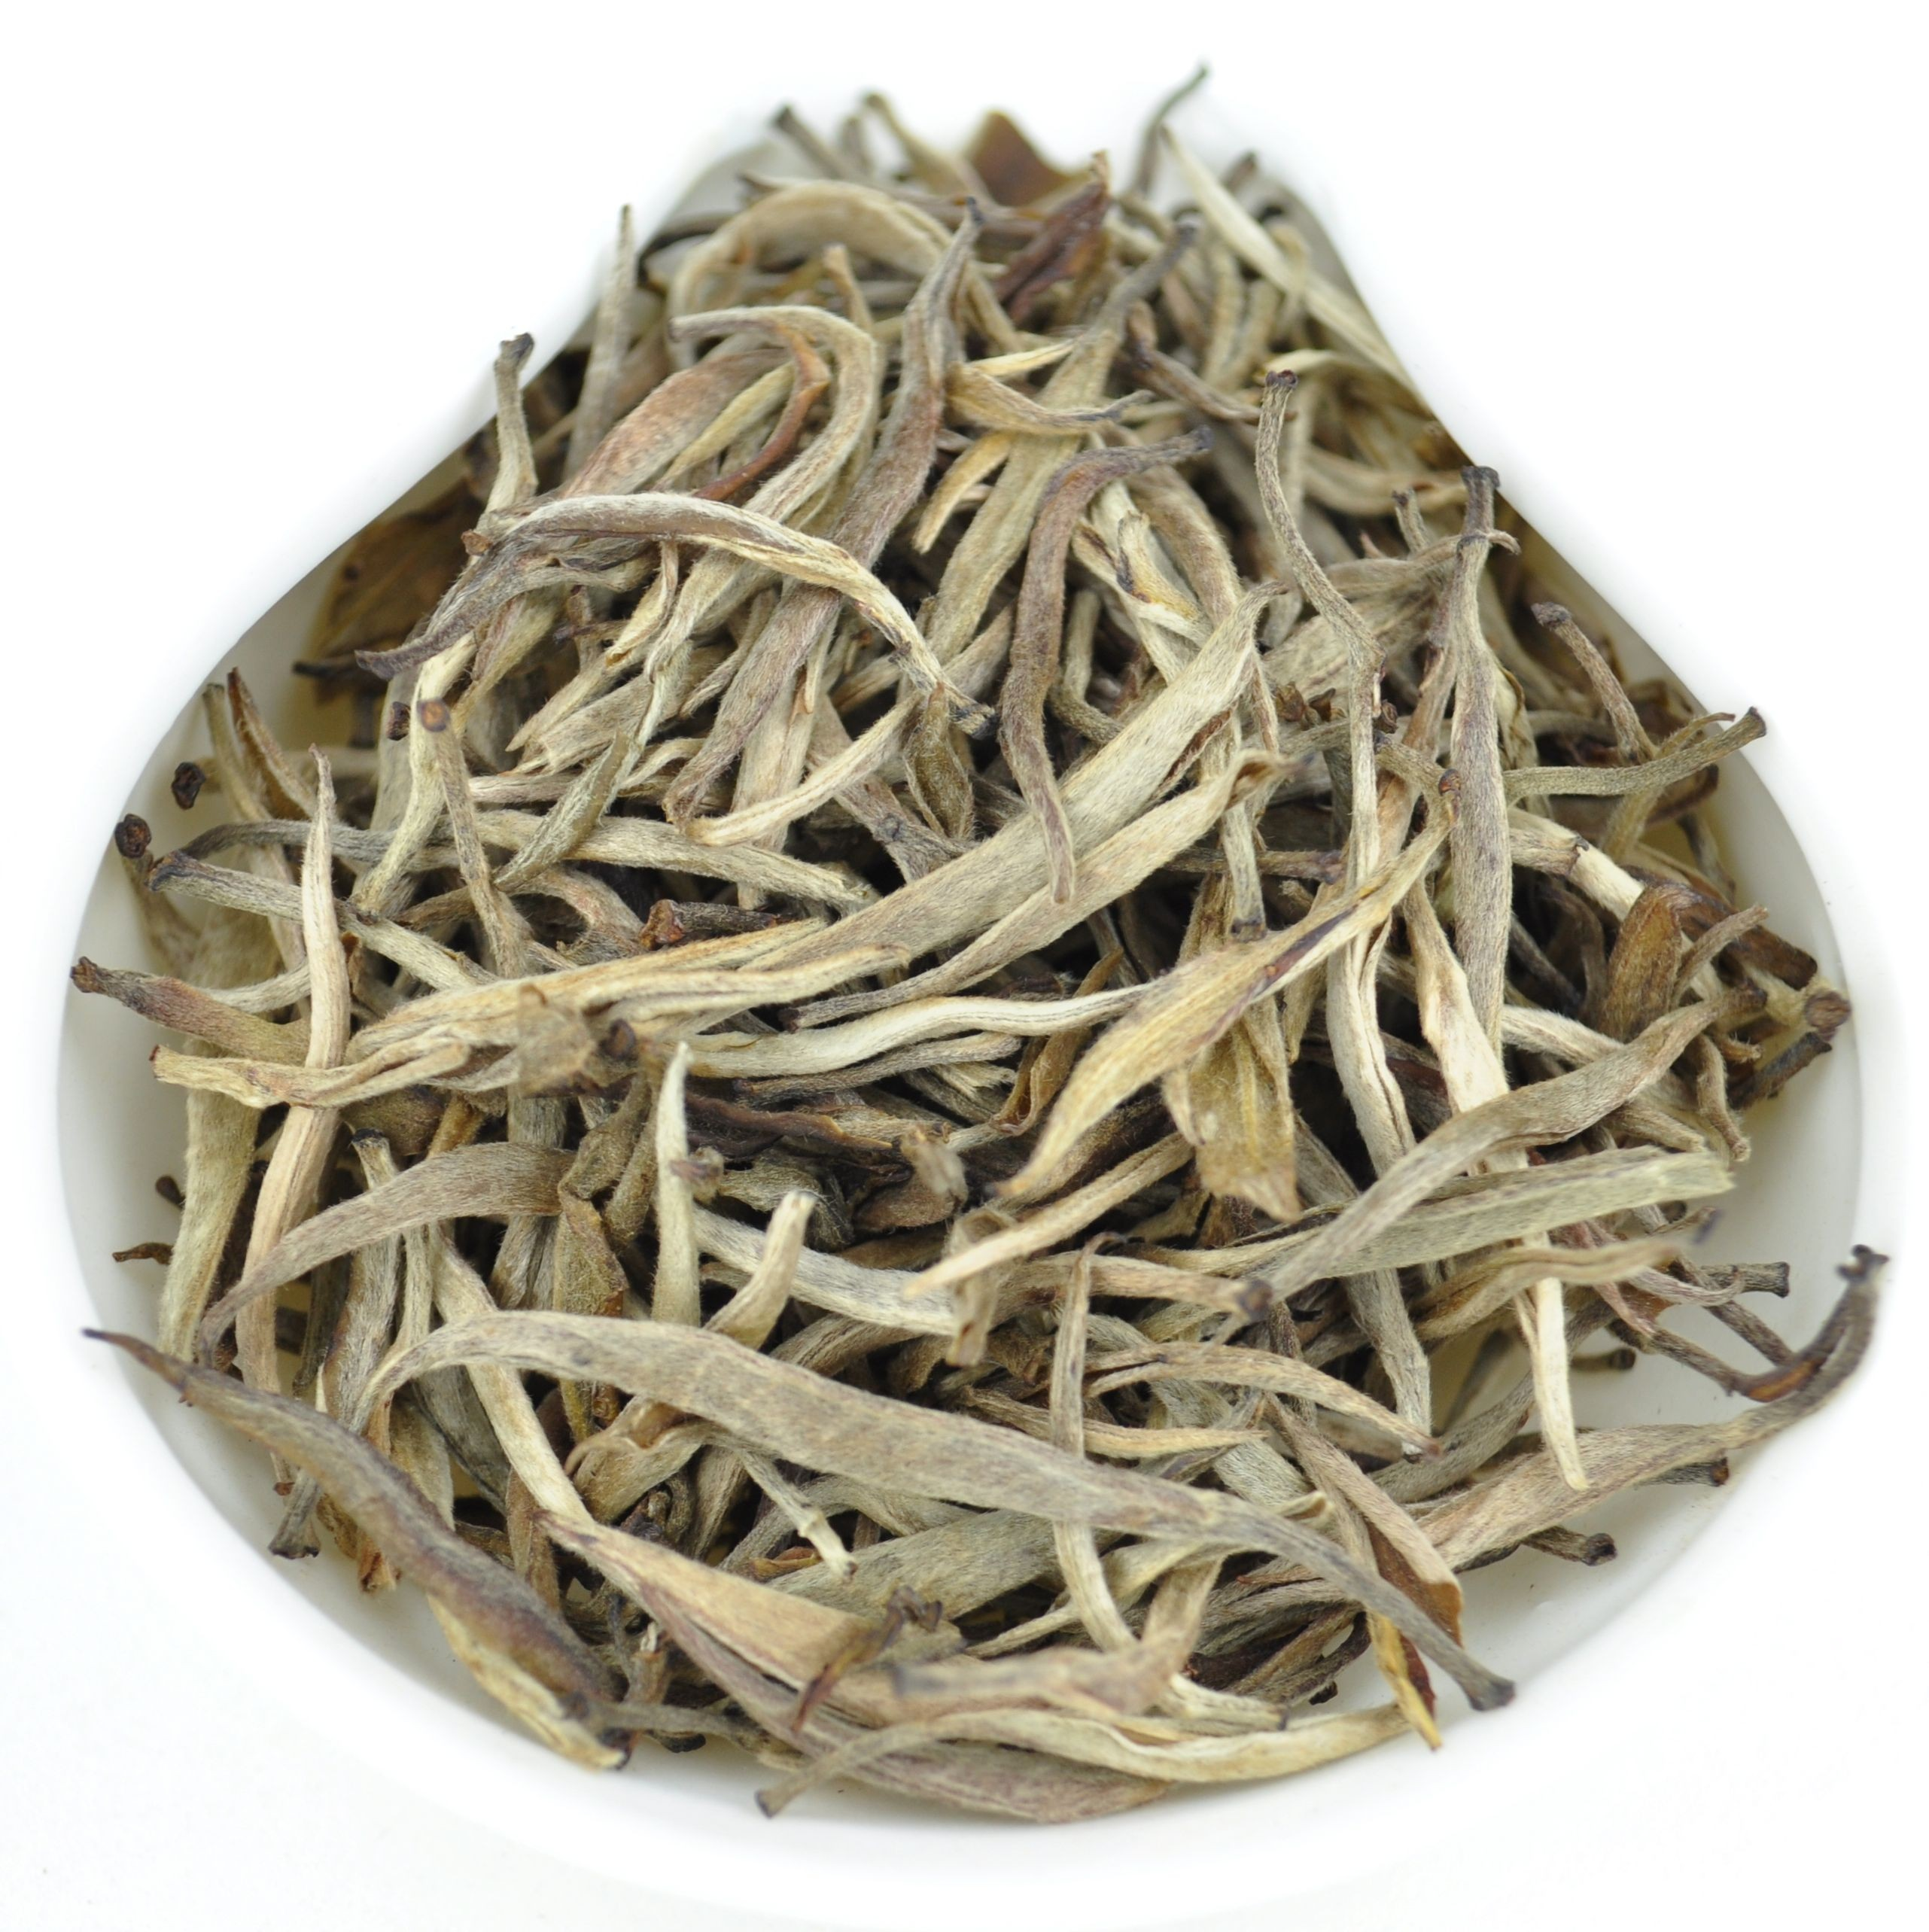 Assamica Sun-Dried Silver Needles White Pu-erh tea * Autumn 2015